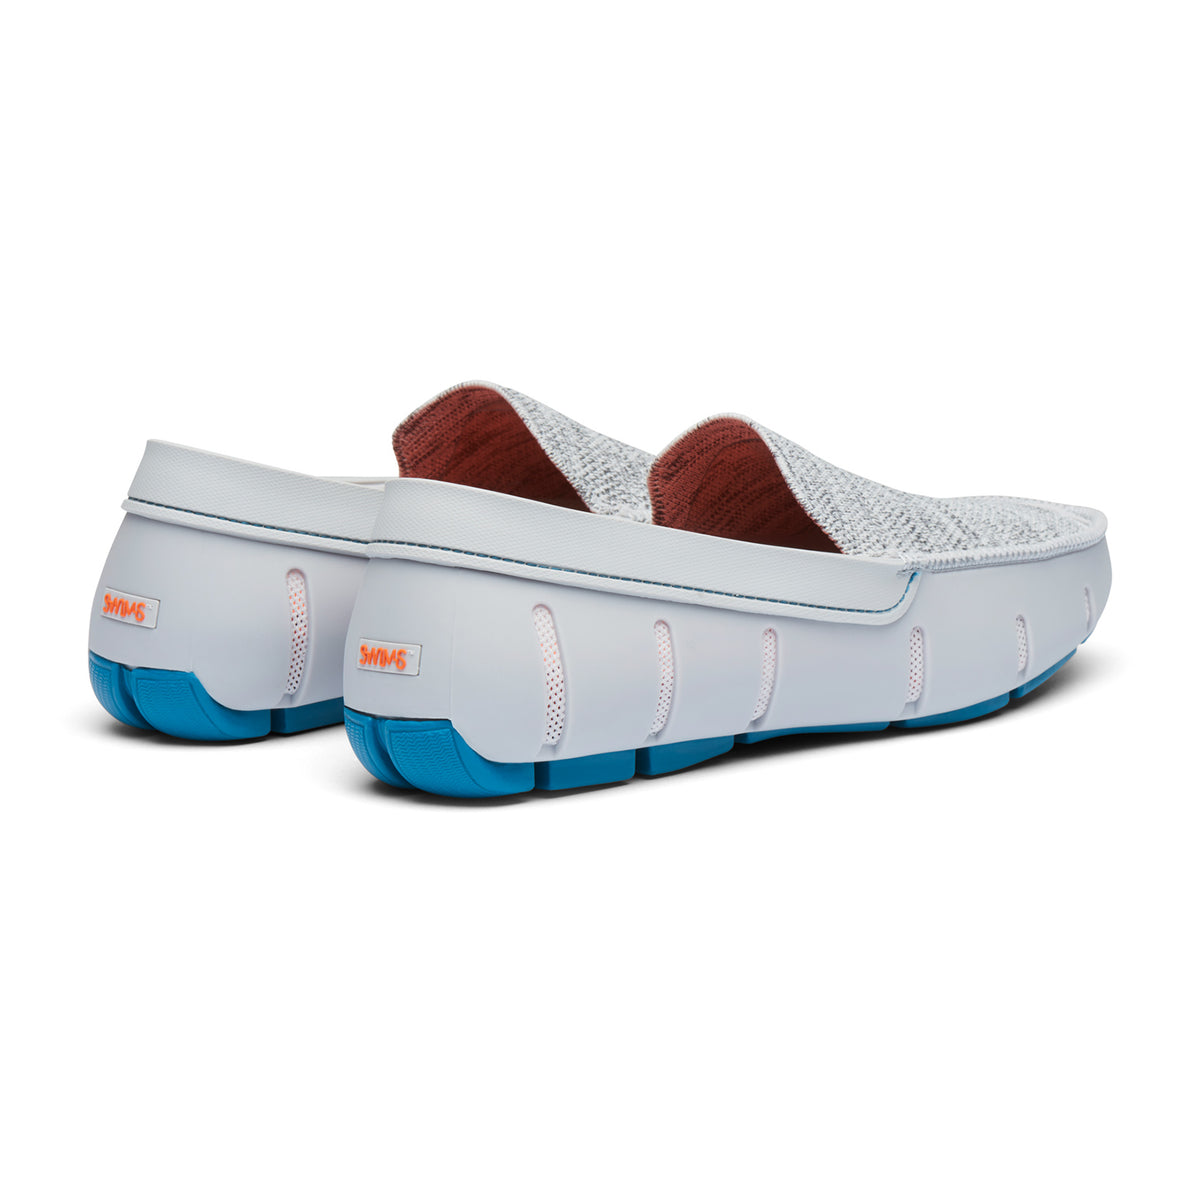 Classic Venetian Loafer - background::white,variant::Alloy/Seaport Blue